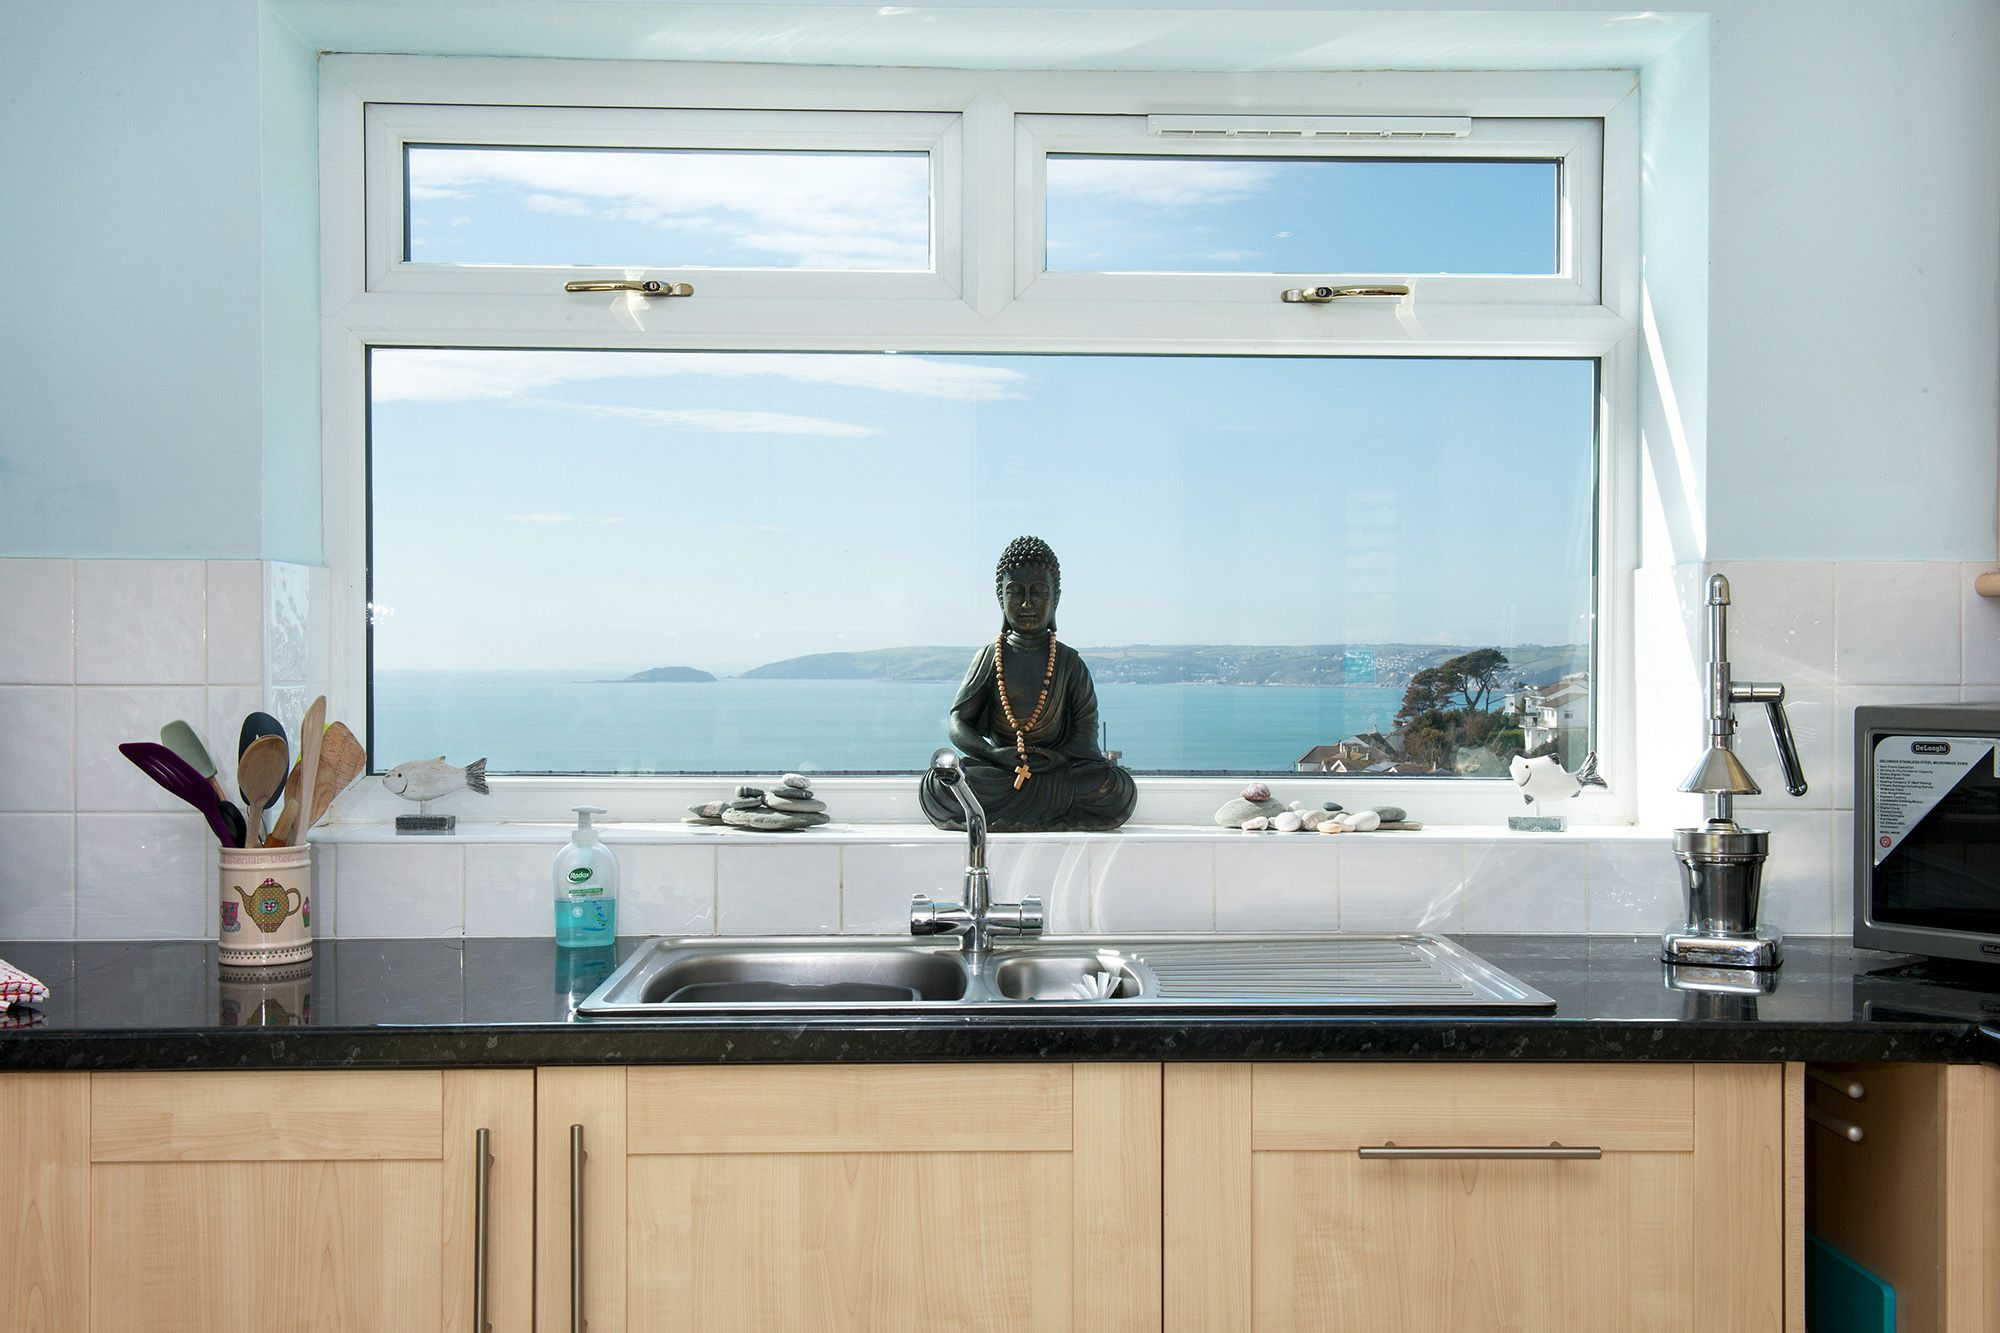 Ground floor: The superb sea and coastal views from the well appointed kitchen